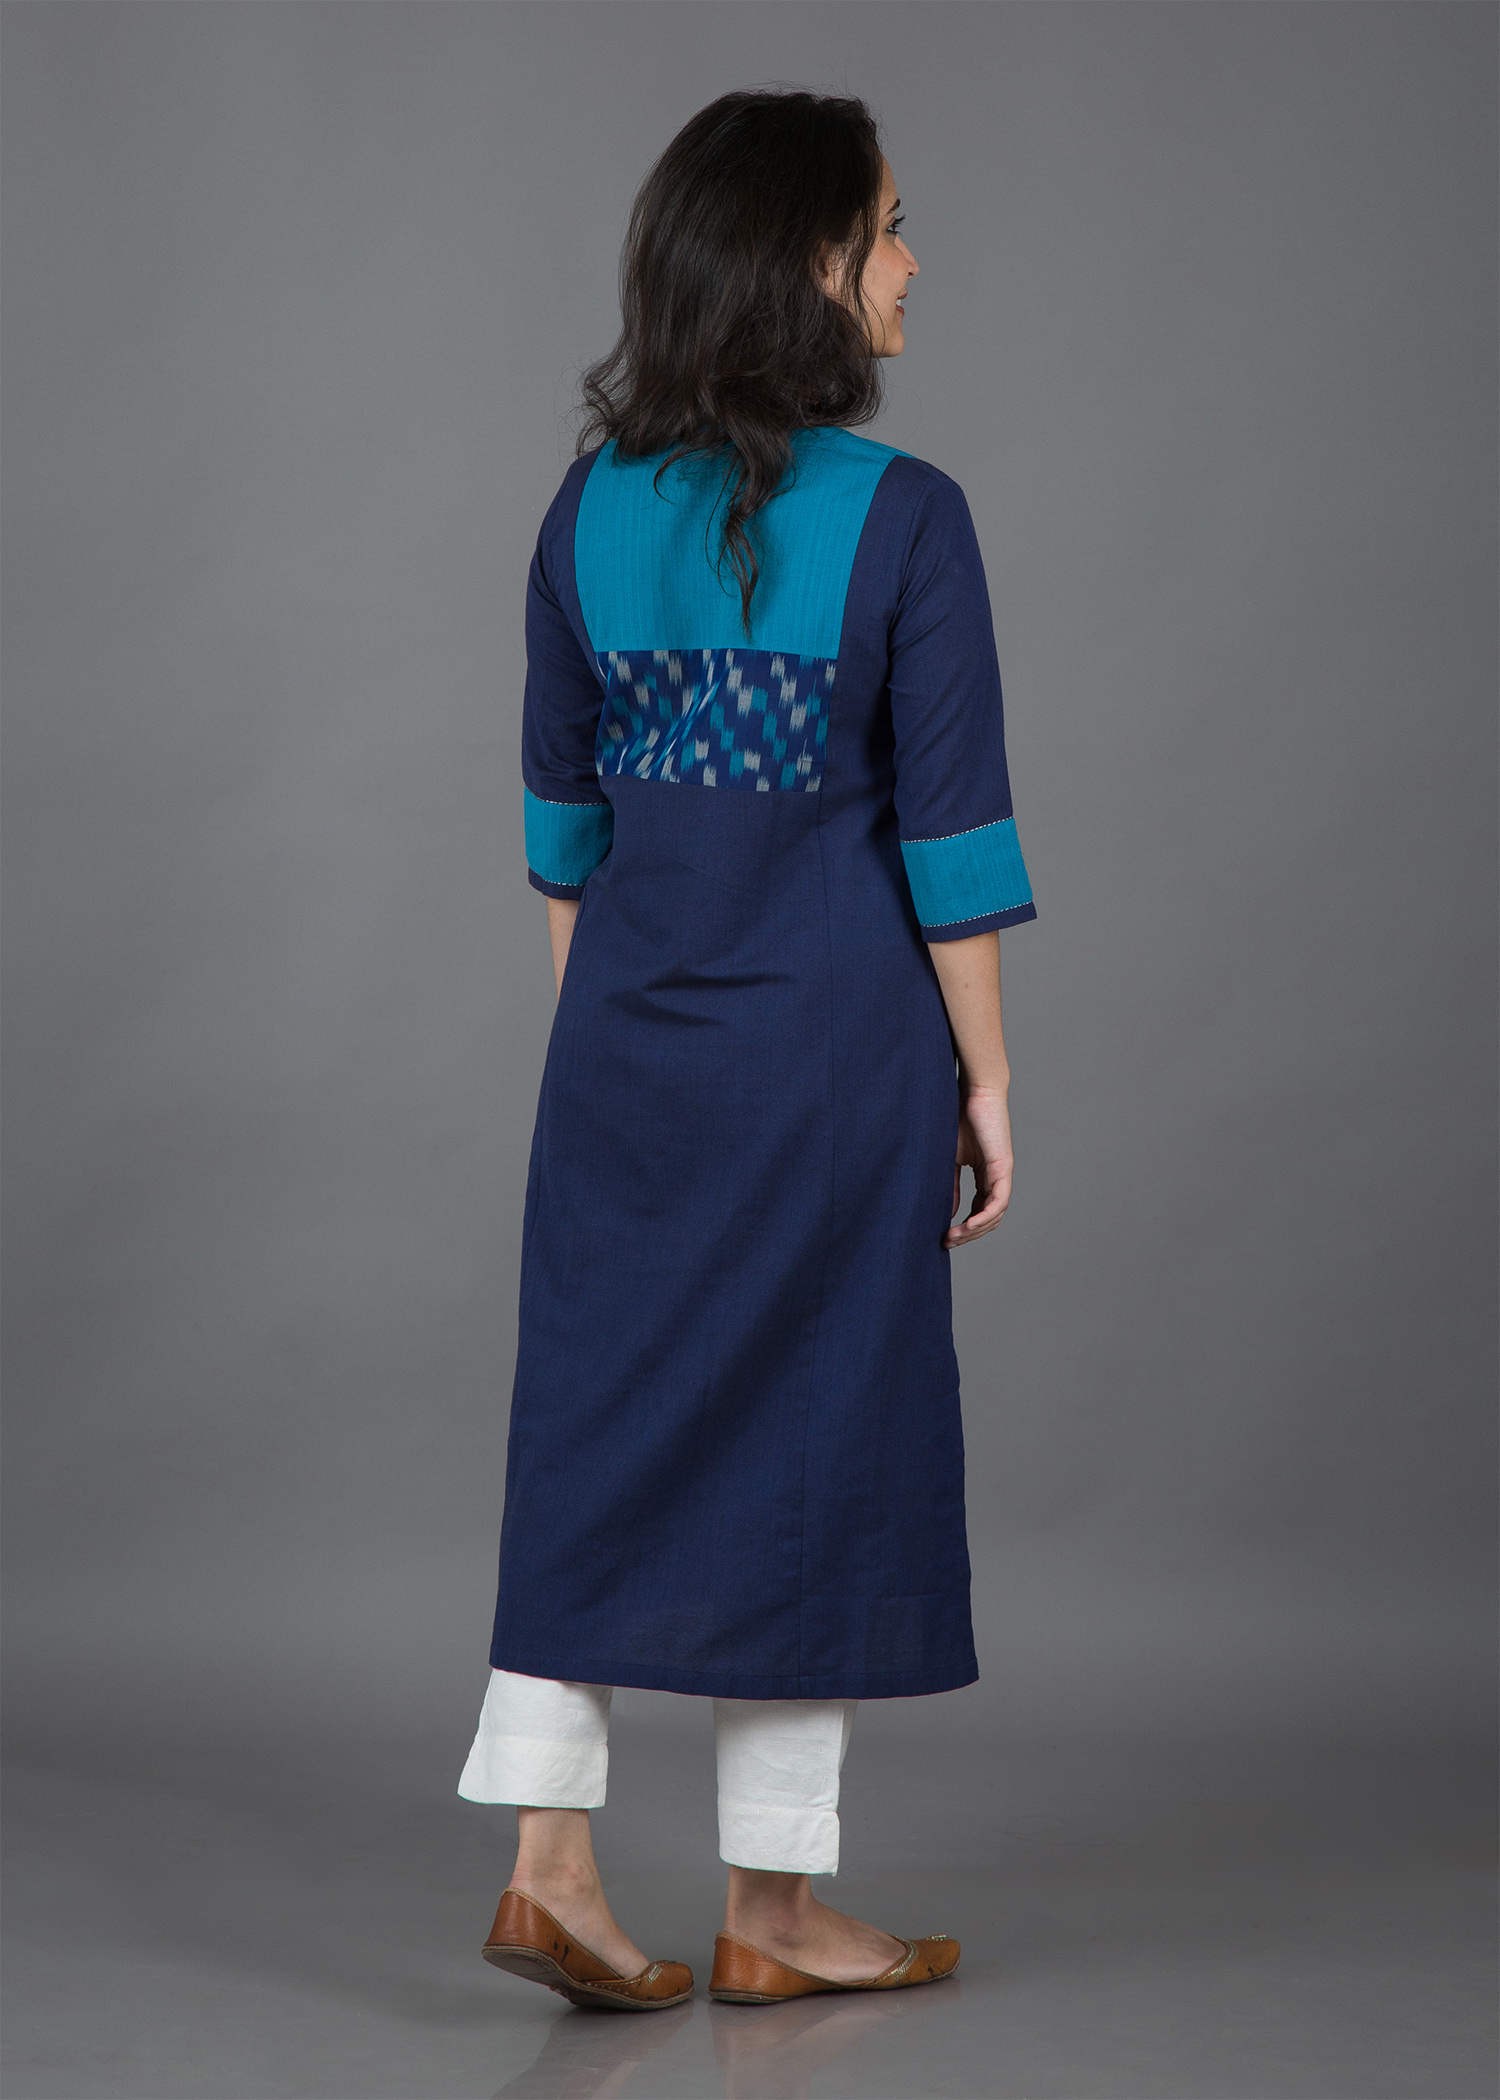 catalog/Winter 2018/blue kurta 3.jpg